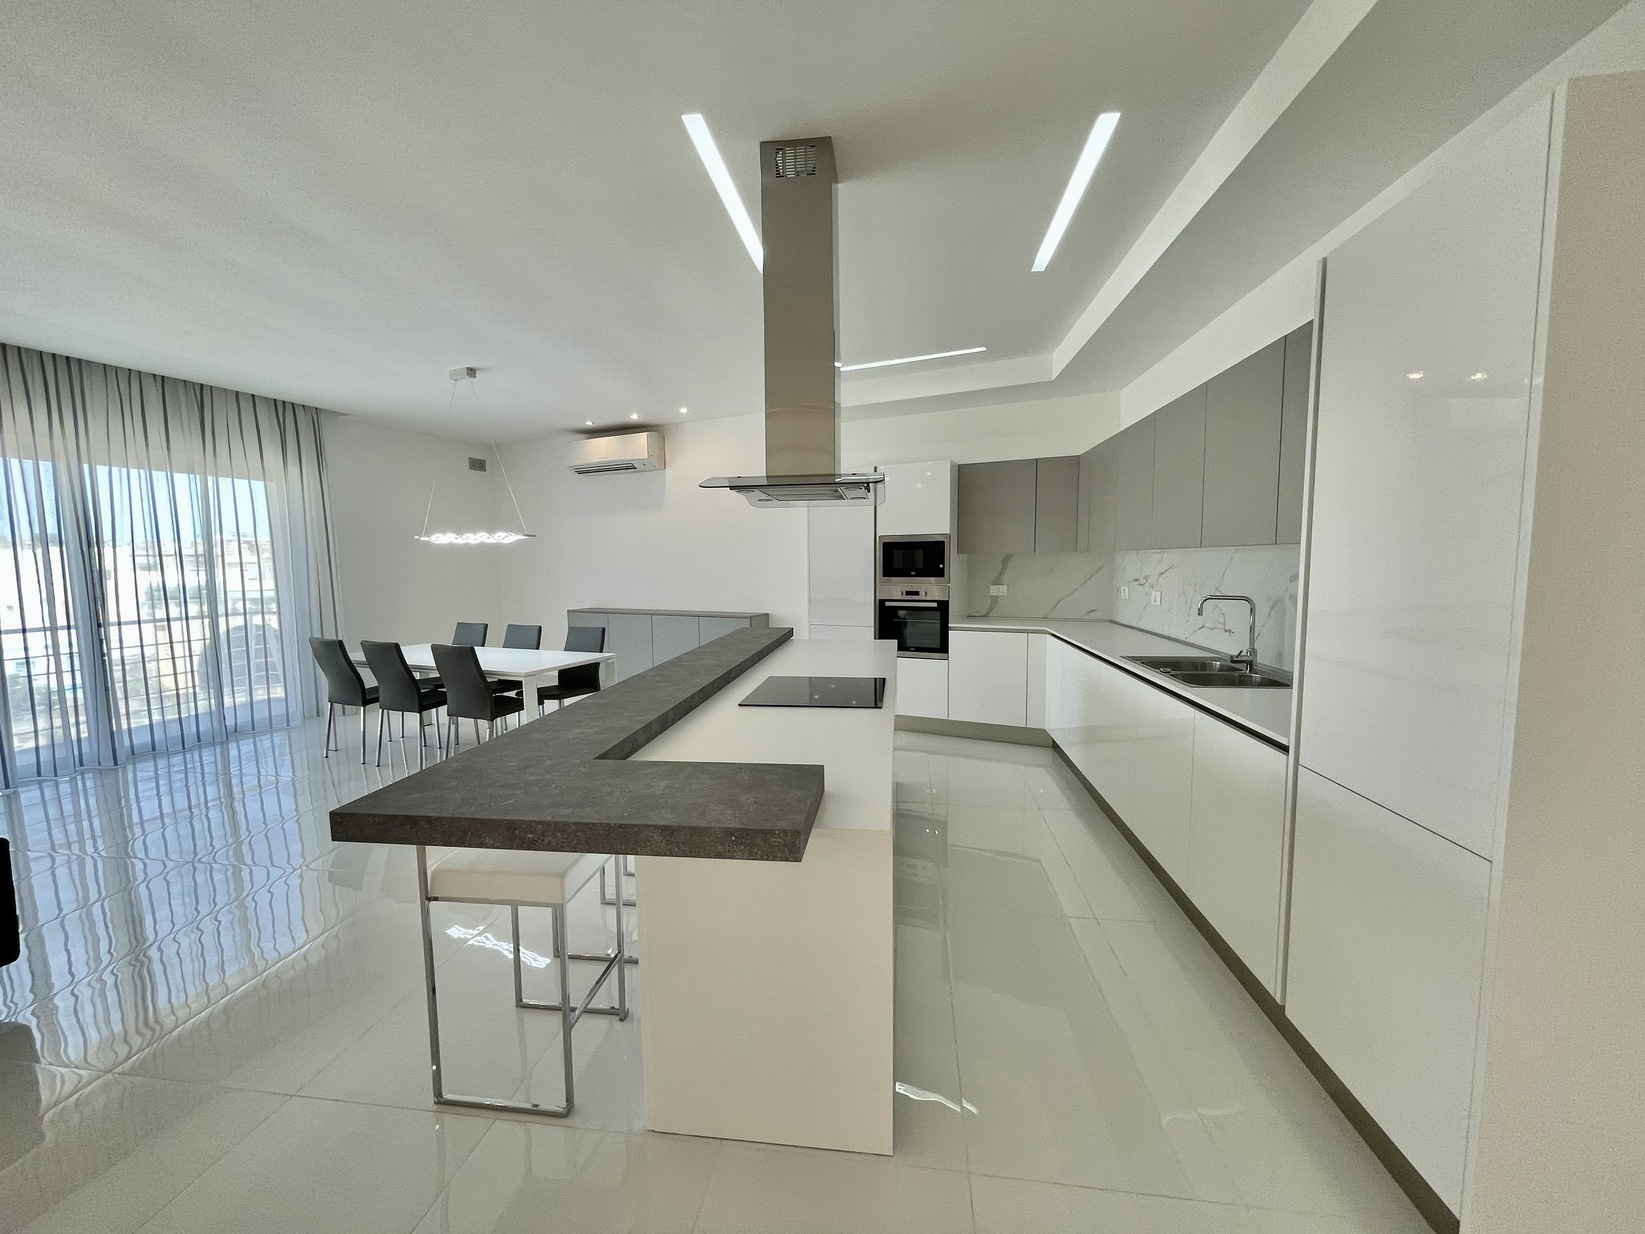 3 bed Apartment For Rent in Zejtun, Zejtun - thumb 6